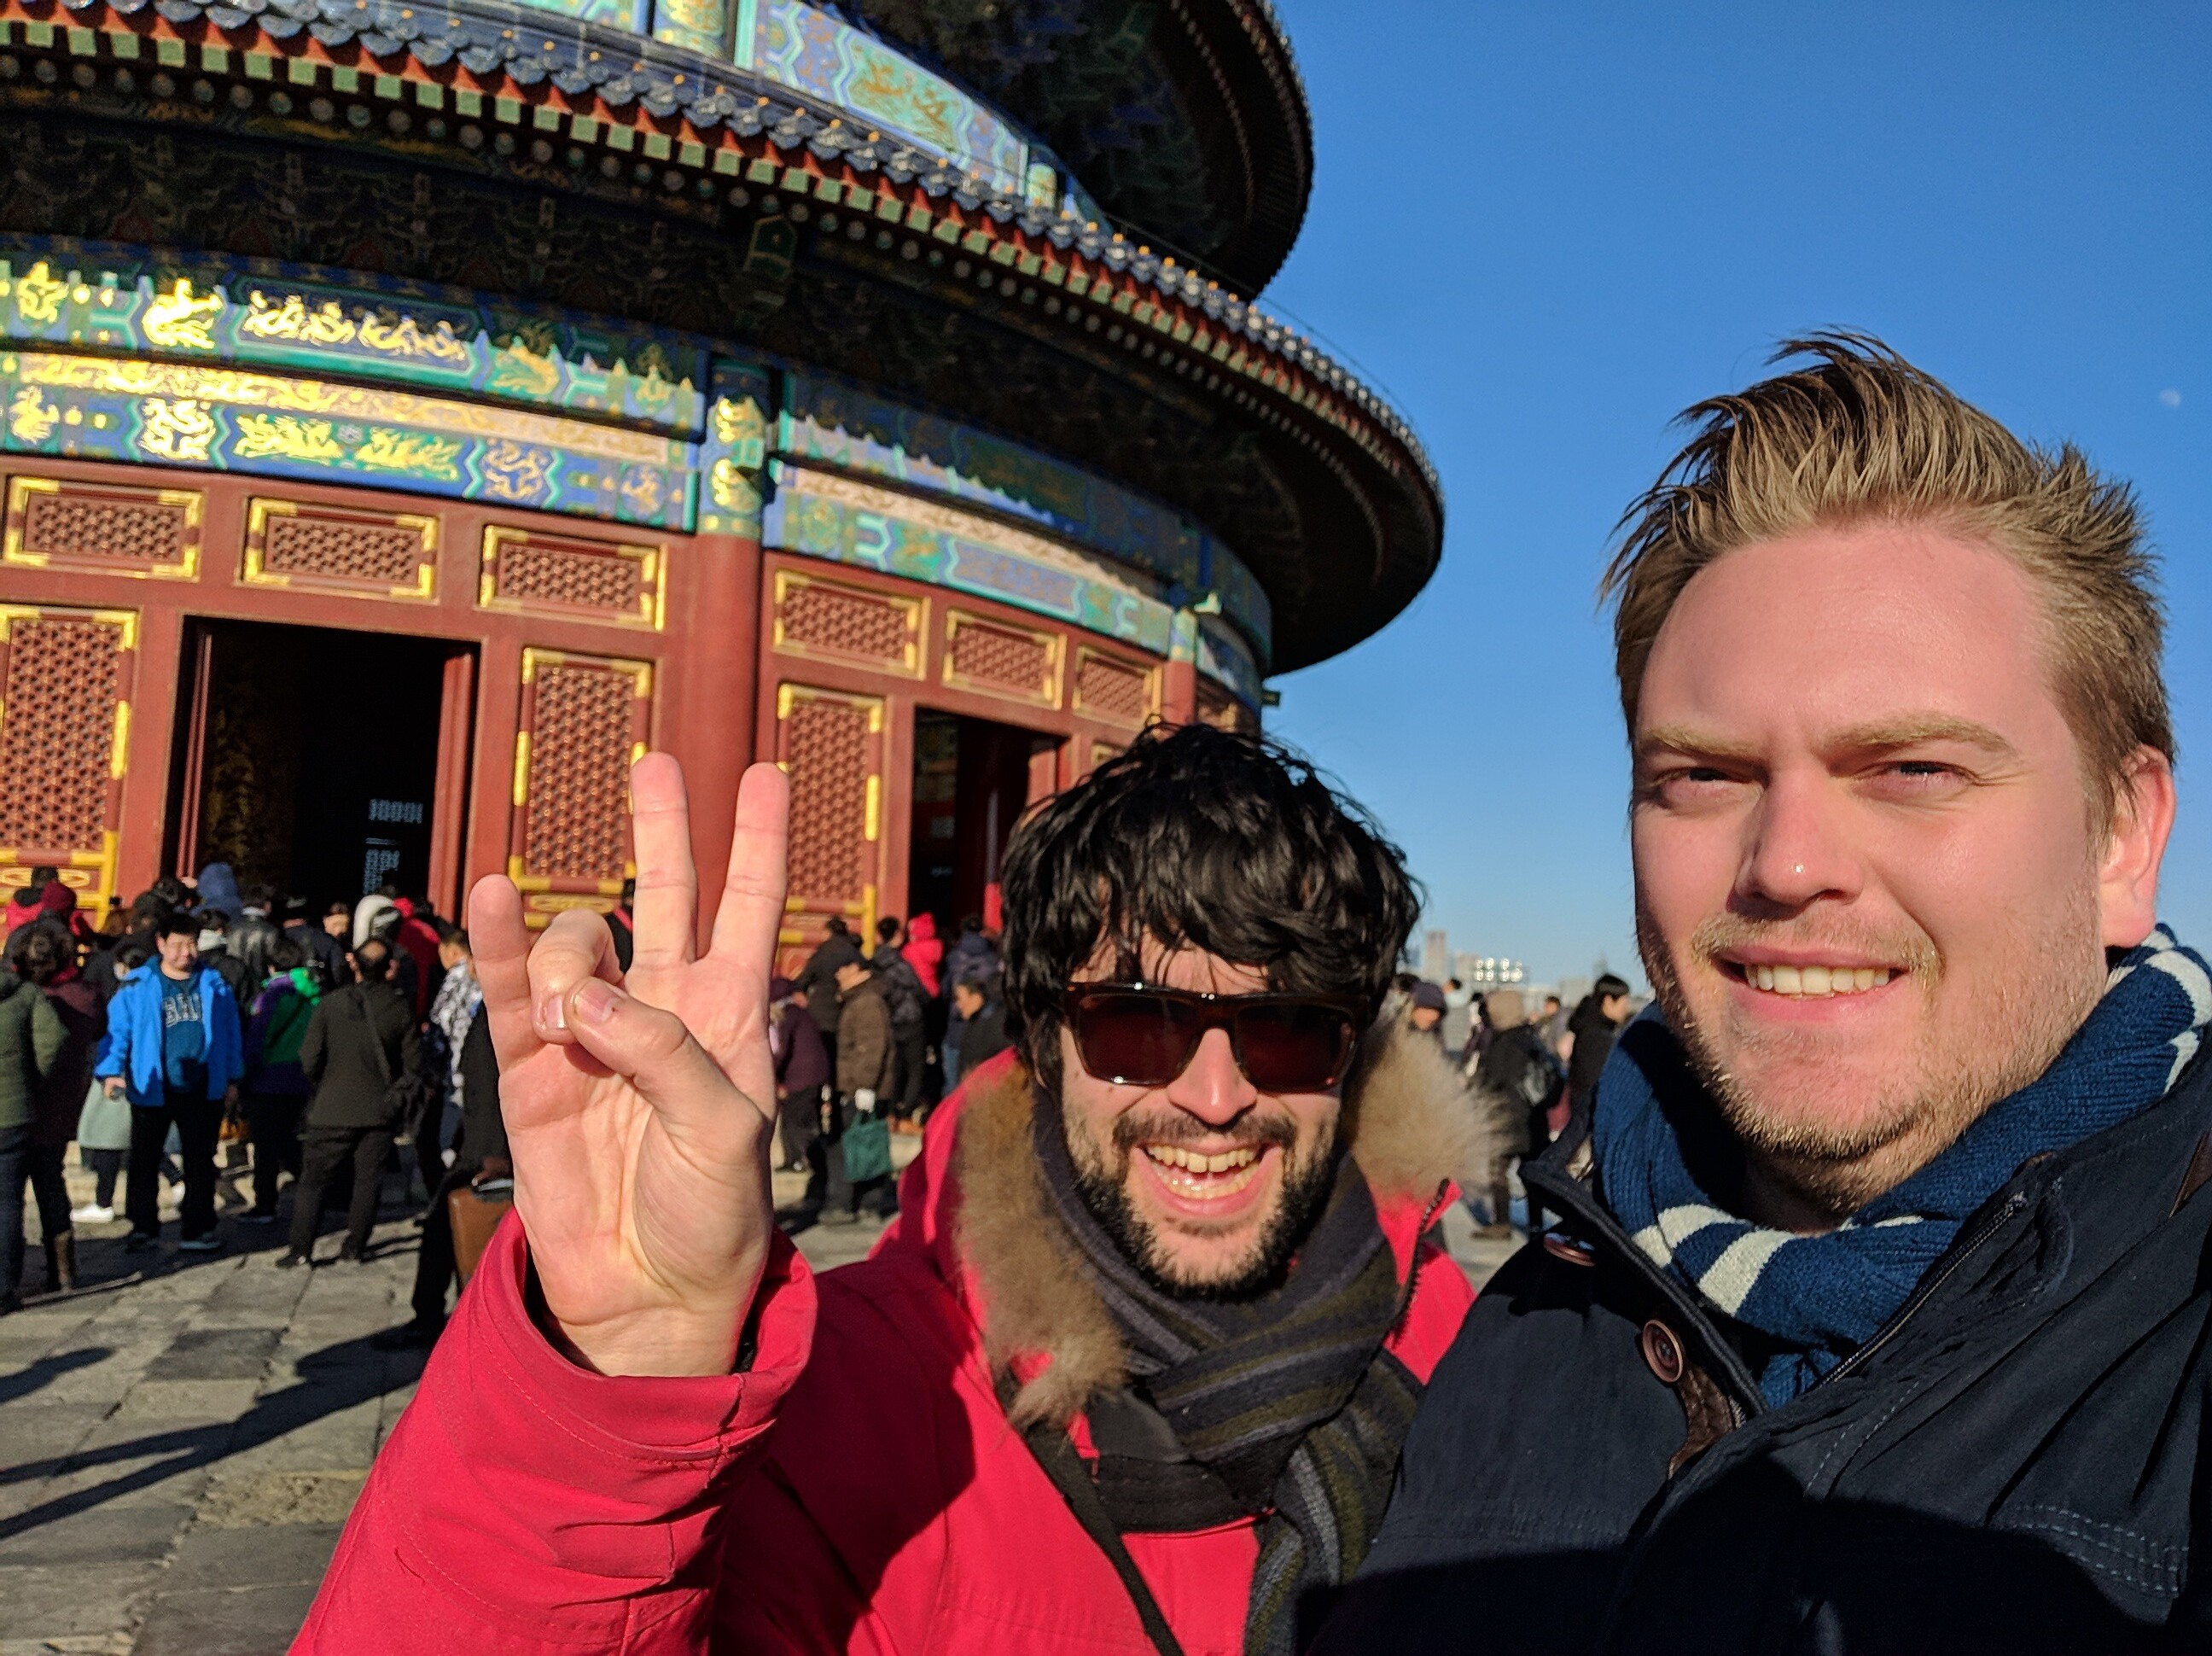 Guillermo and Thomas at Temple of Heaven